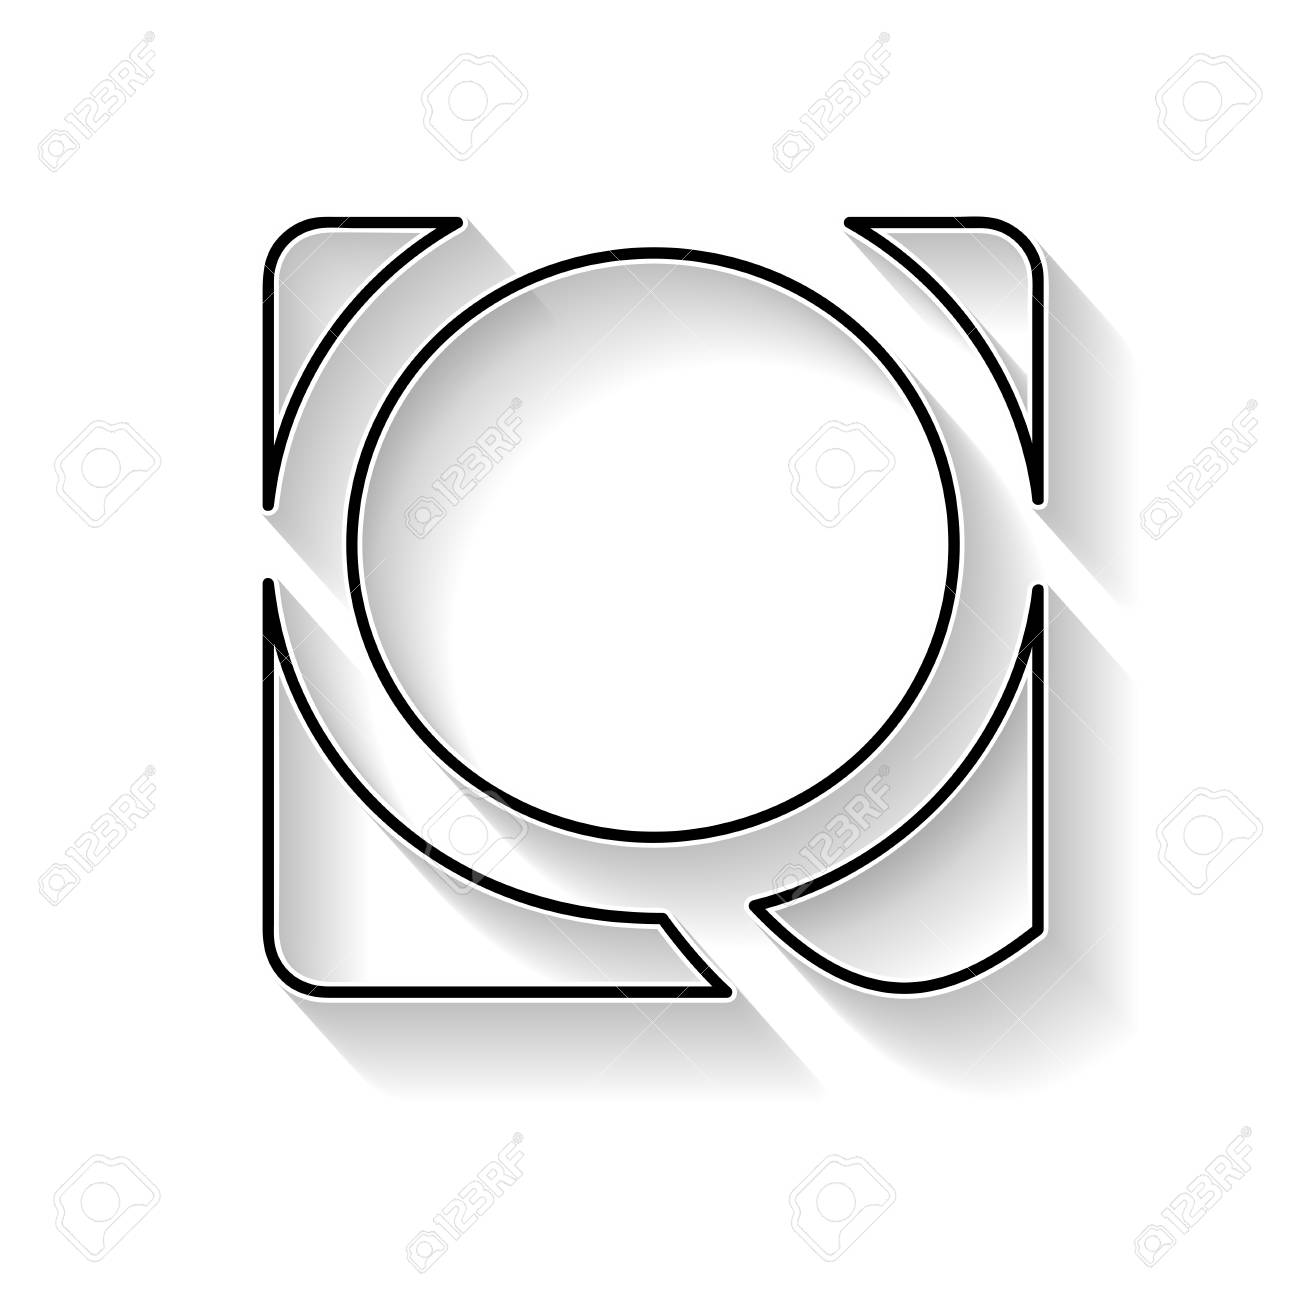 Vector Initial Letter Q Sign Made With Black Line Royalty Free